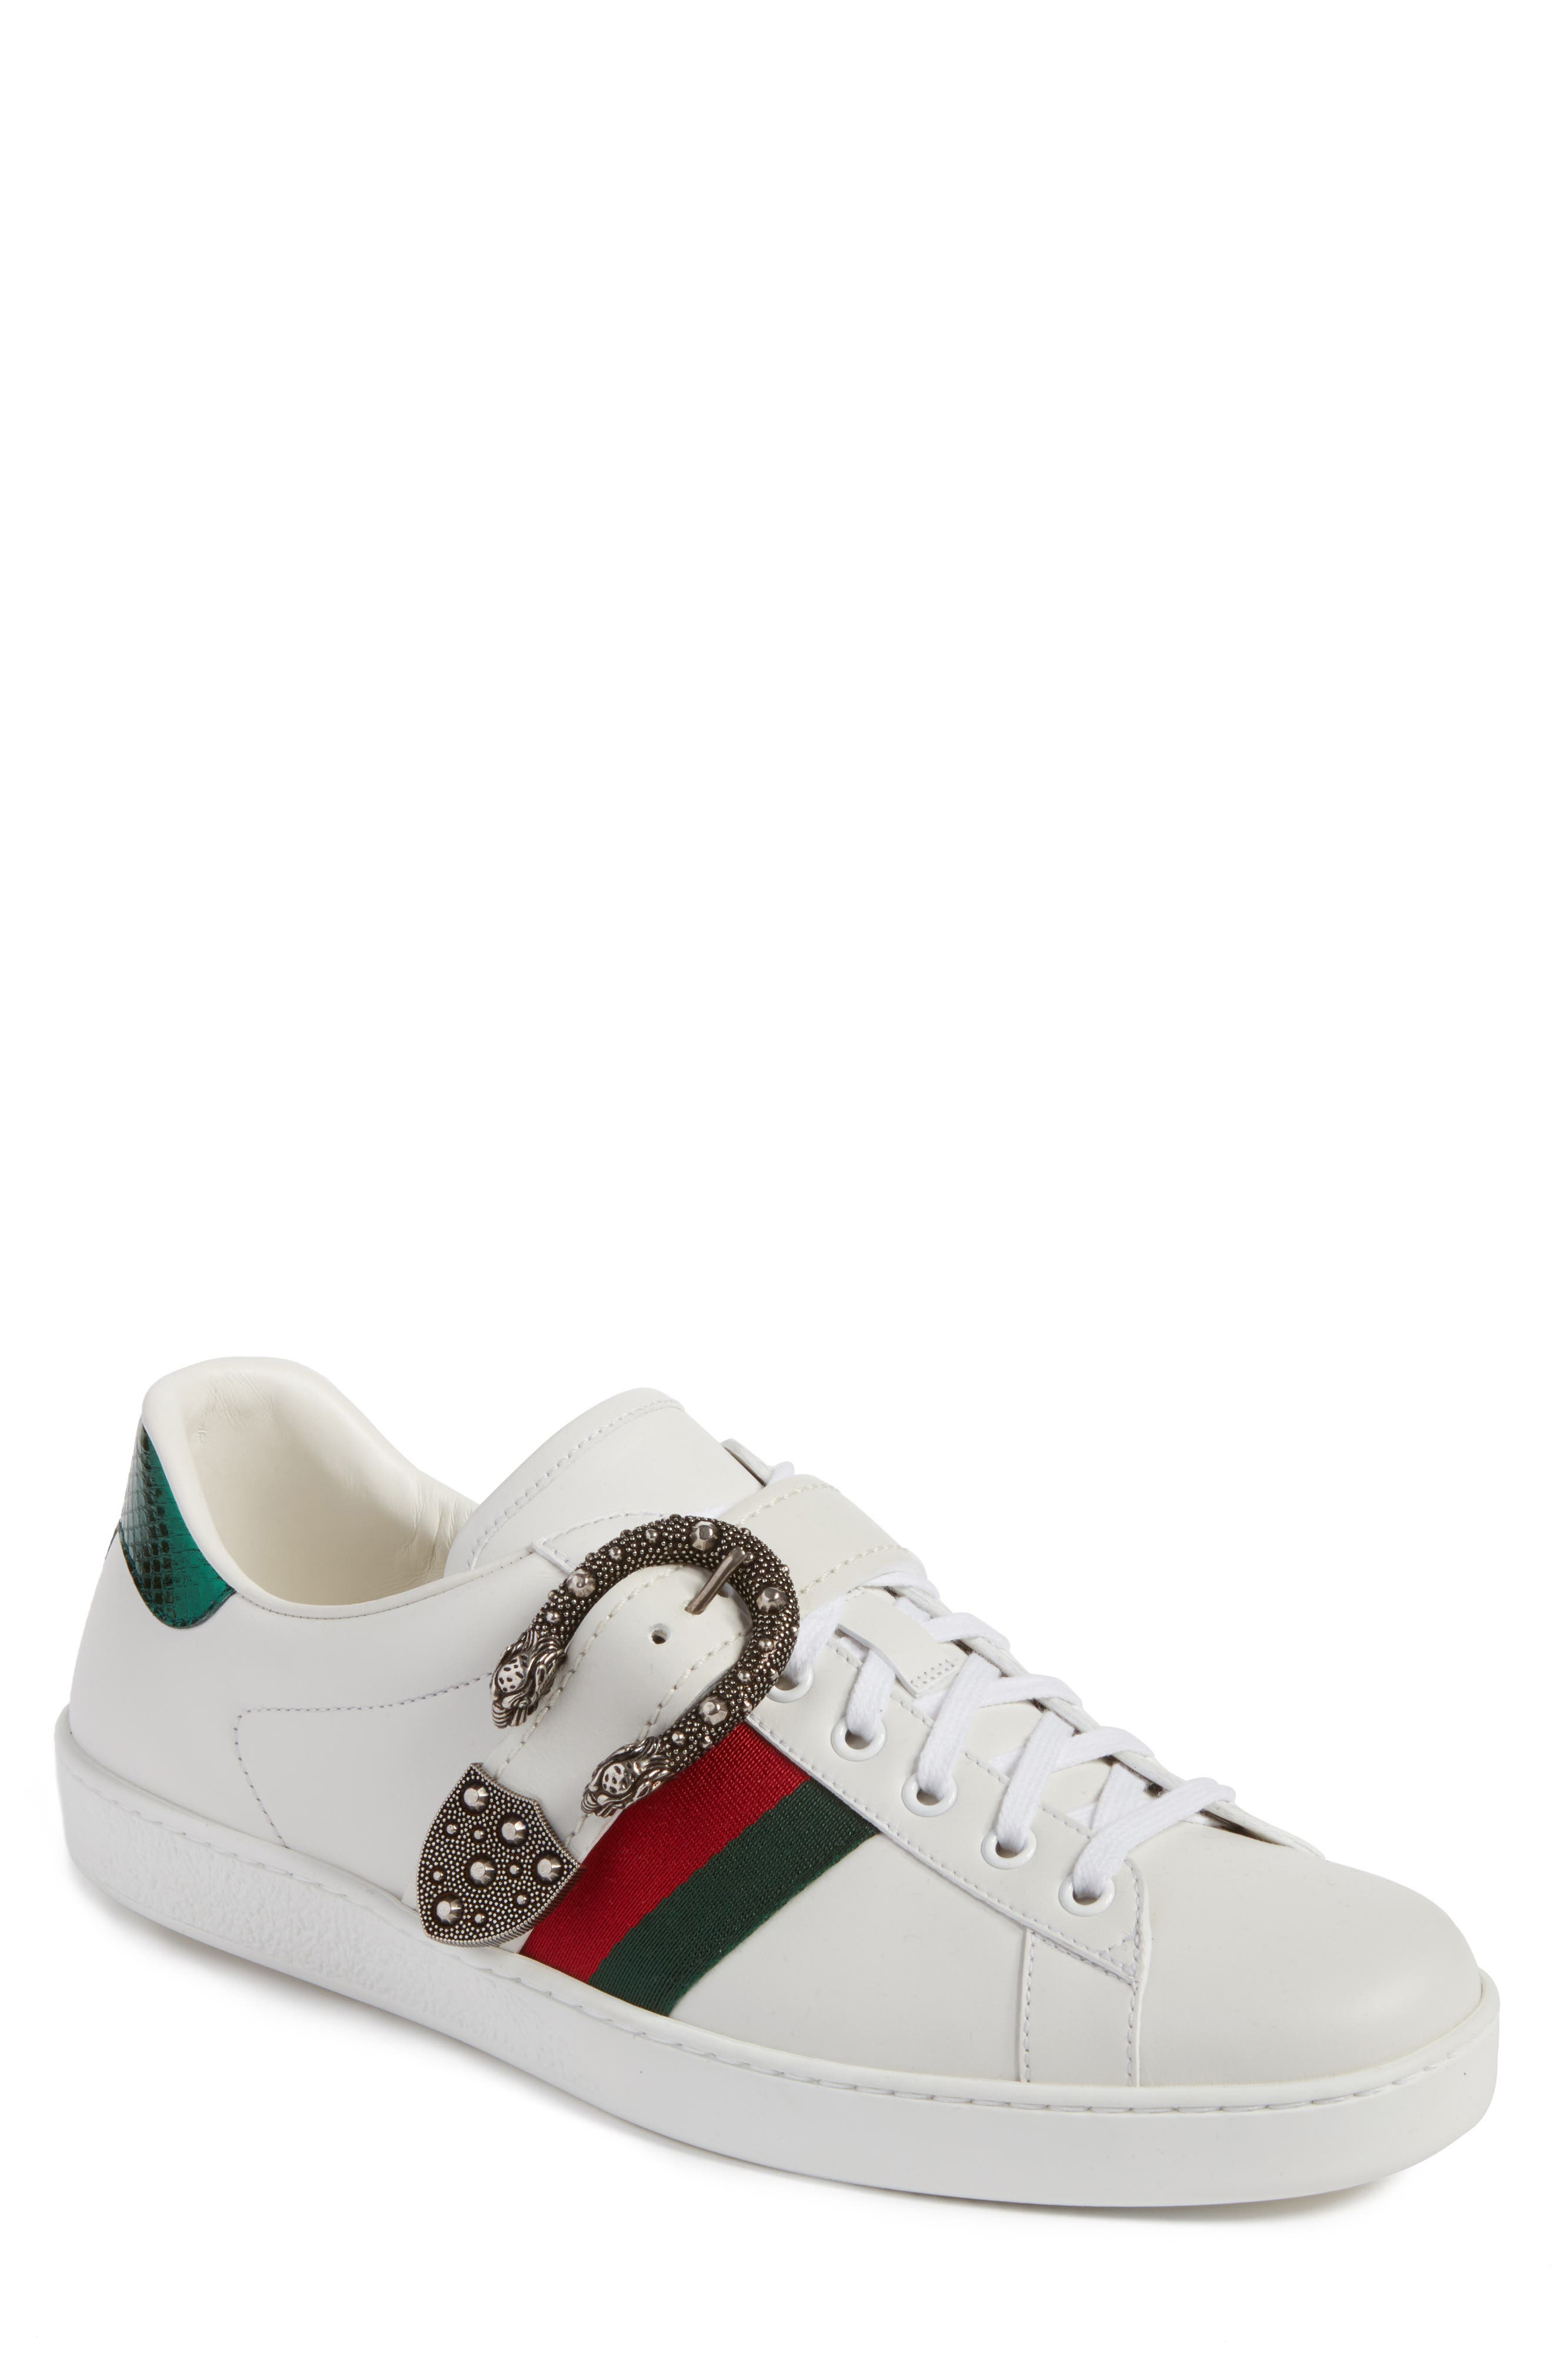 New Ace Dionysus Buckle Low Top Sneaker,                             Main thumbnail 1, color,                             138